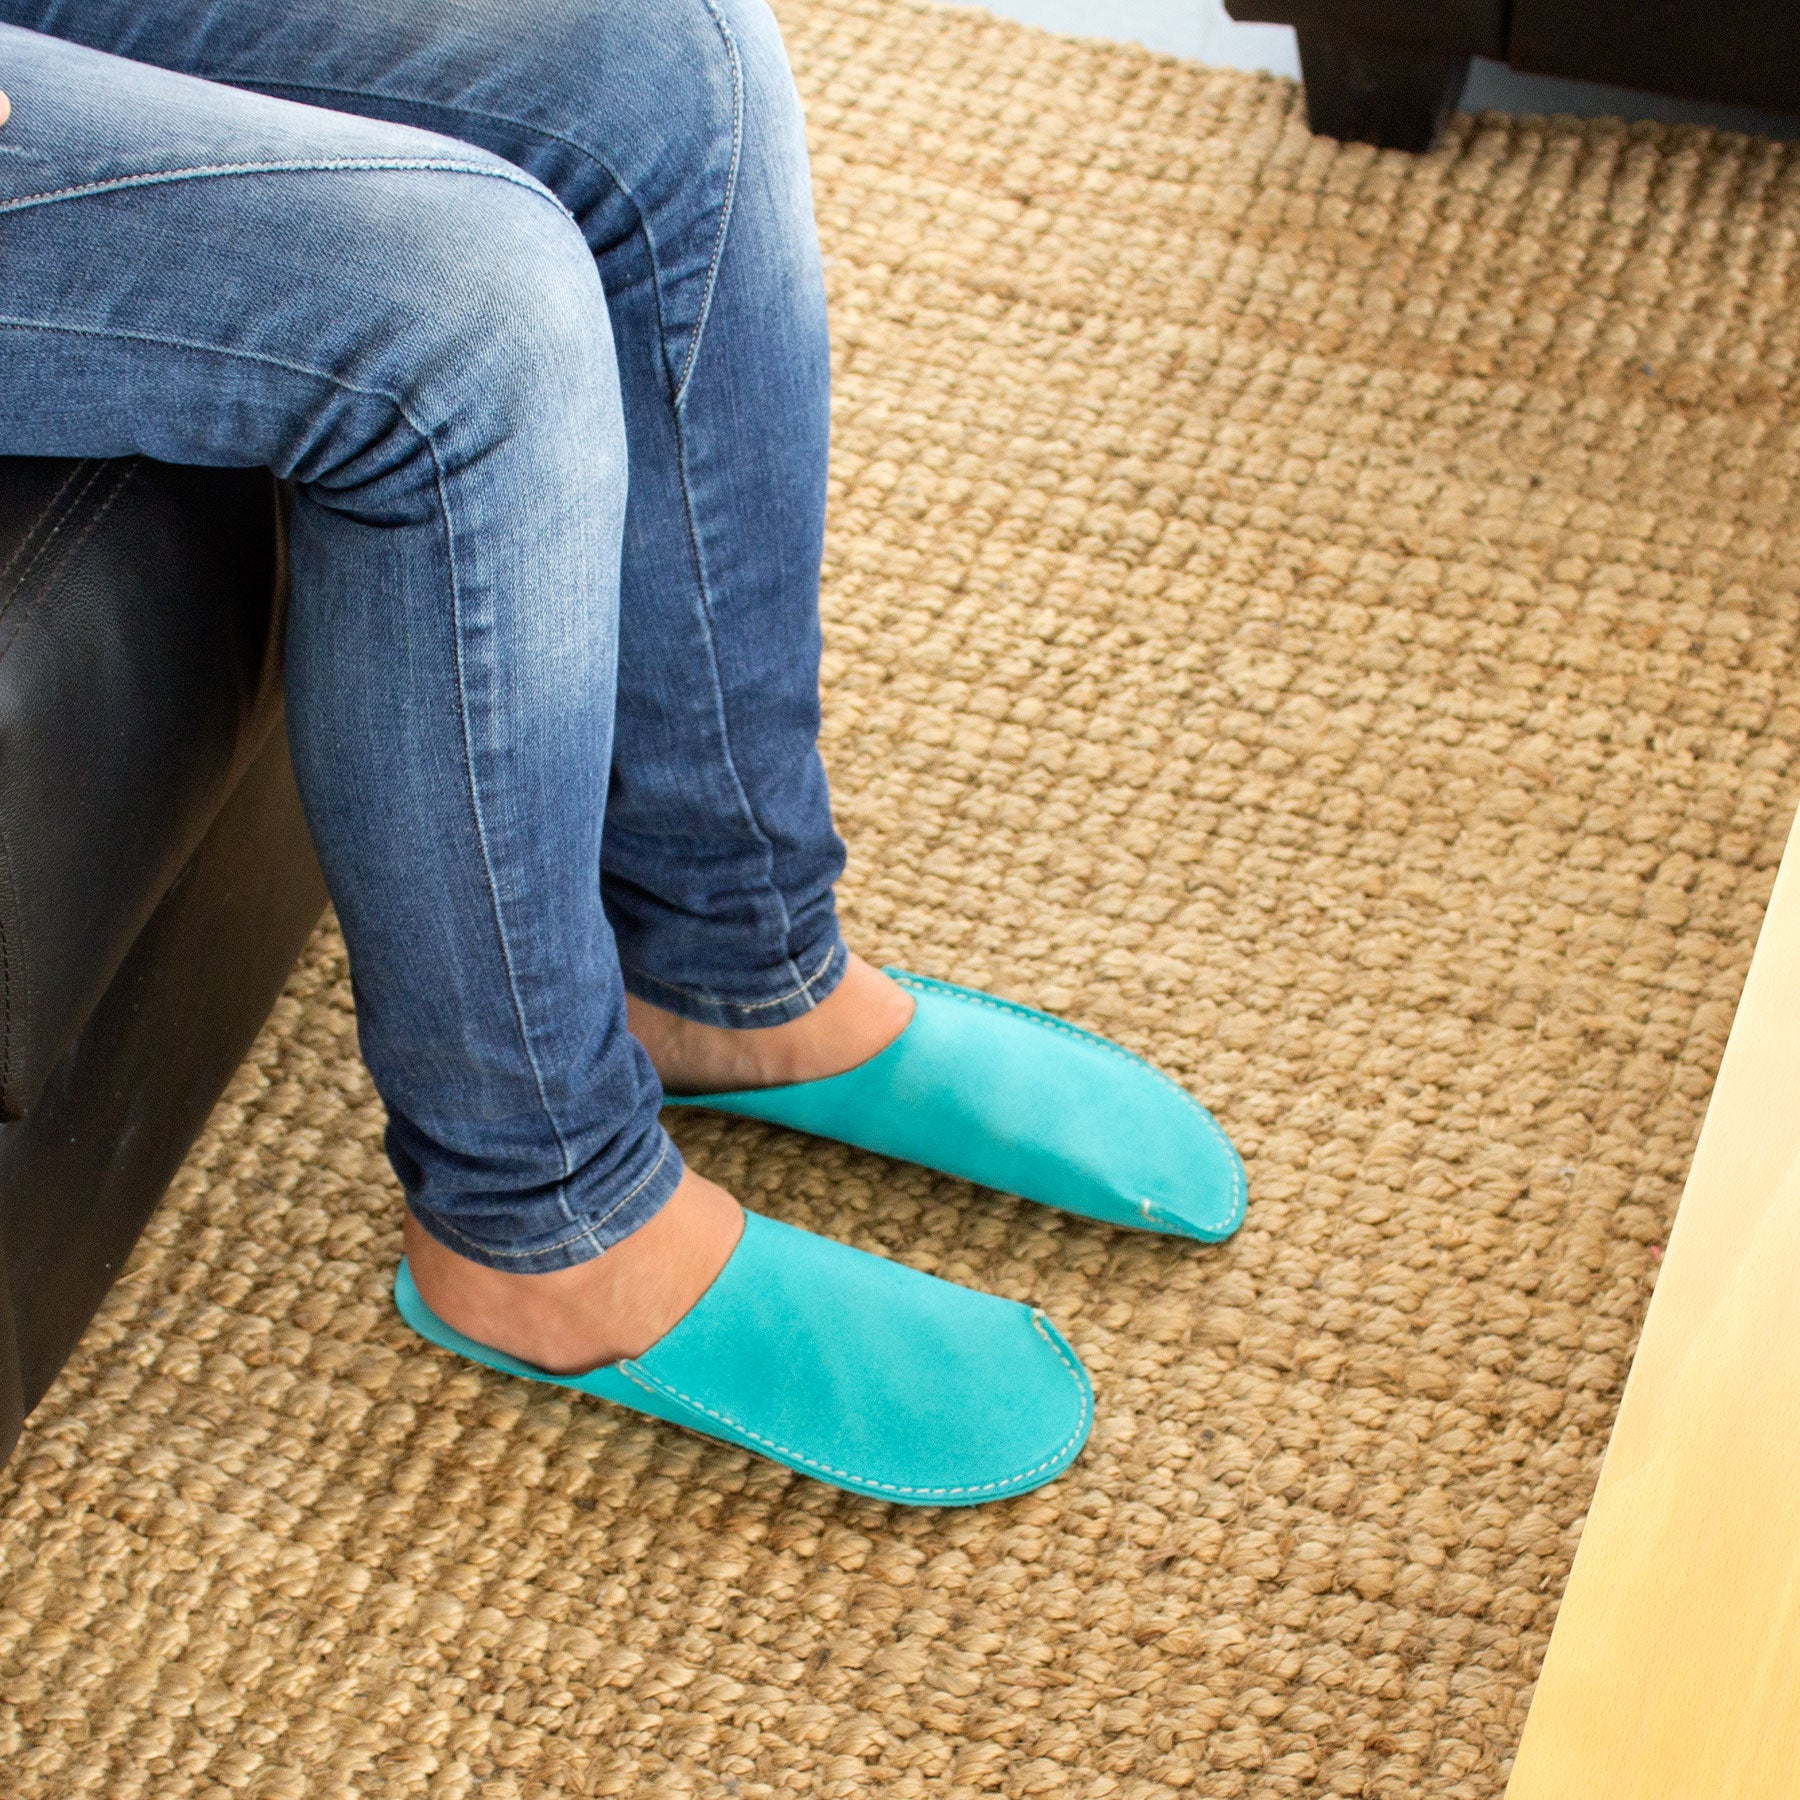 Turquoise CP Slippers Luxe - CP Slippers